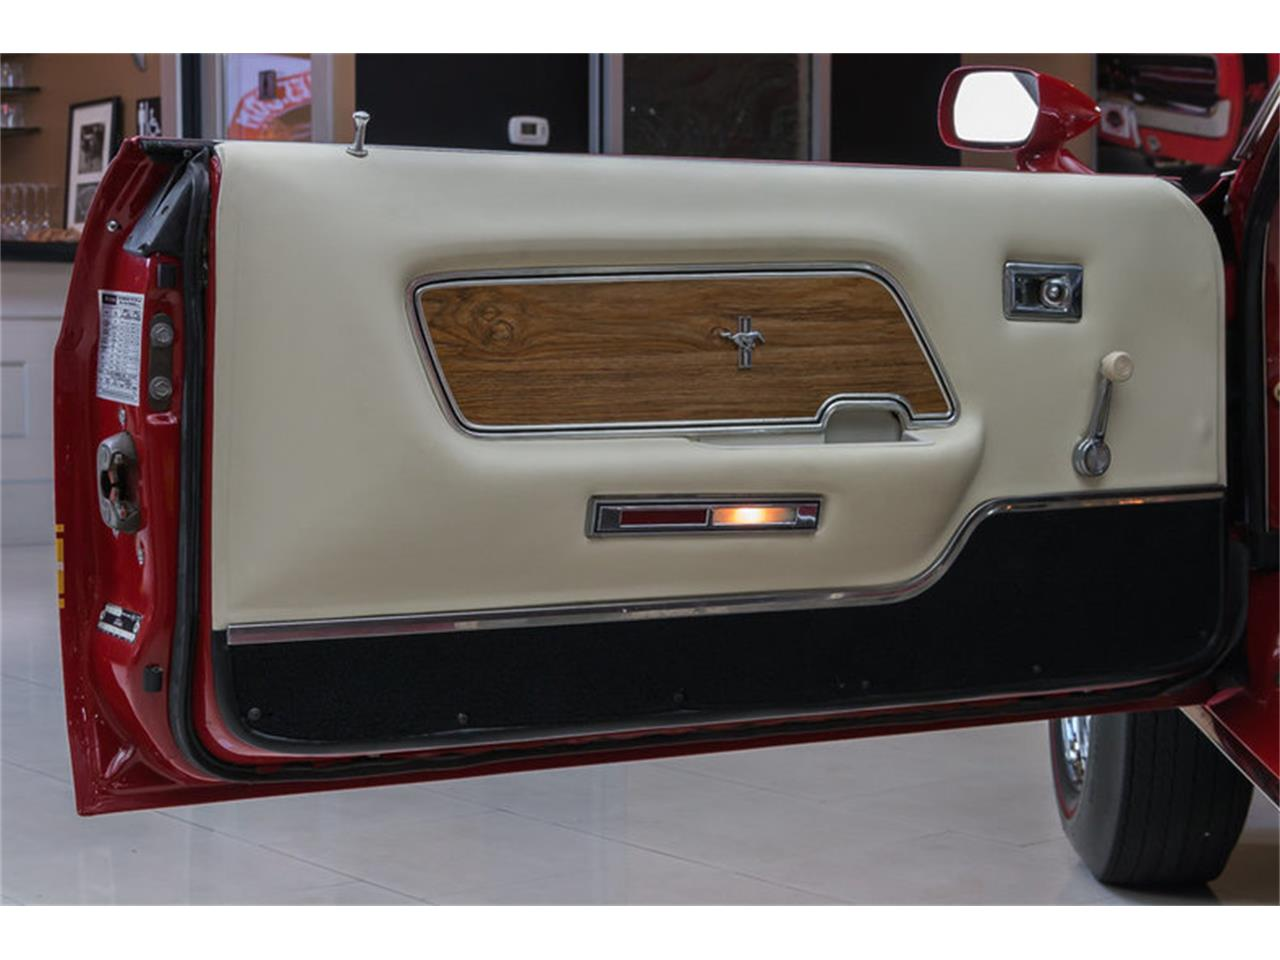 Large Picture of '69 Ford Mustang Mach 1 S Code located in Michigan - $59,900.00 - IS3G